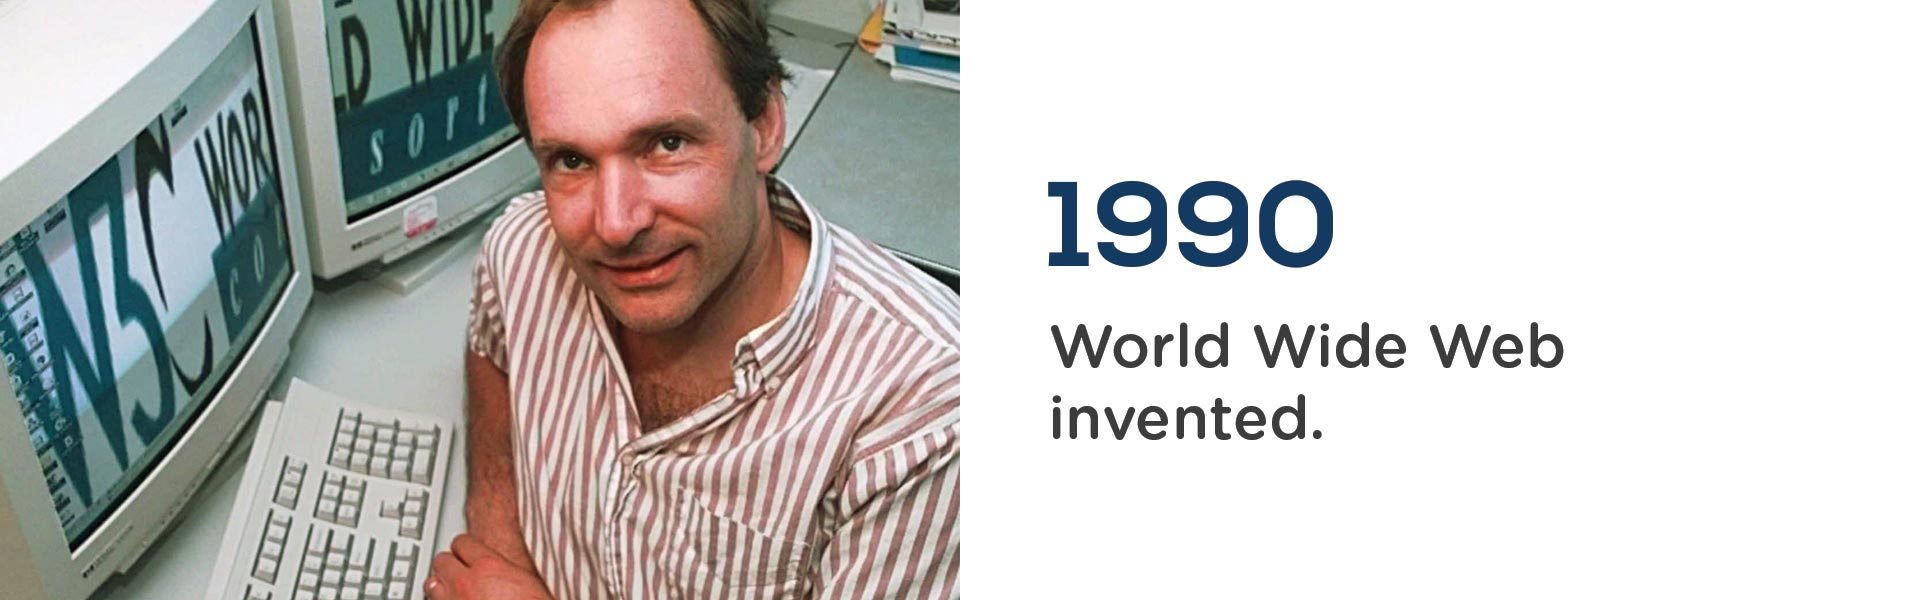 Sr Ti Berners Lee invented the World Wide Web in 1990.Wrigley Claydon Solicitors, Trusted for 200 years